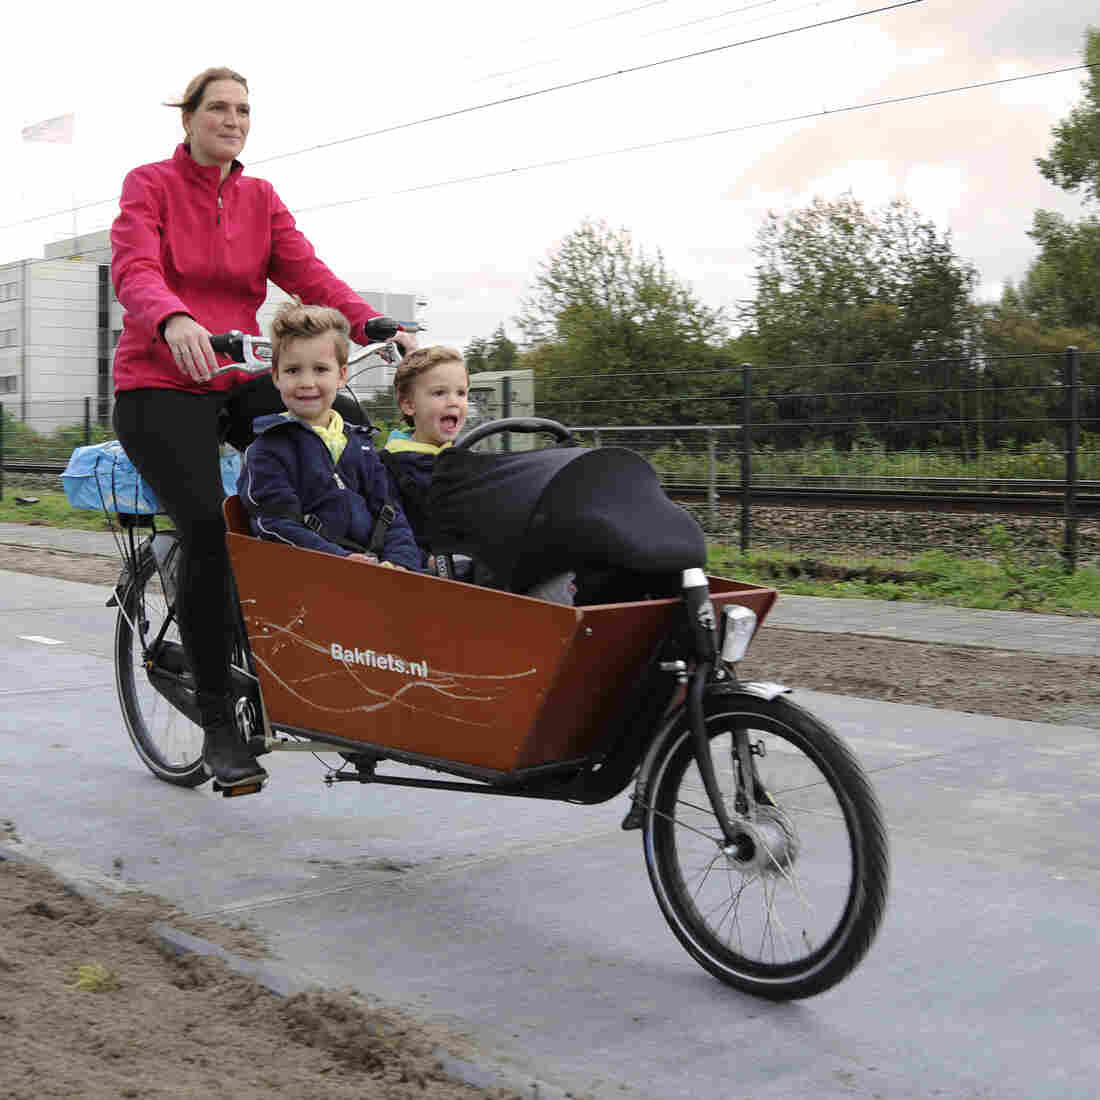 Solar Bike Path Opens This Week In The Netherlands